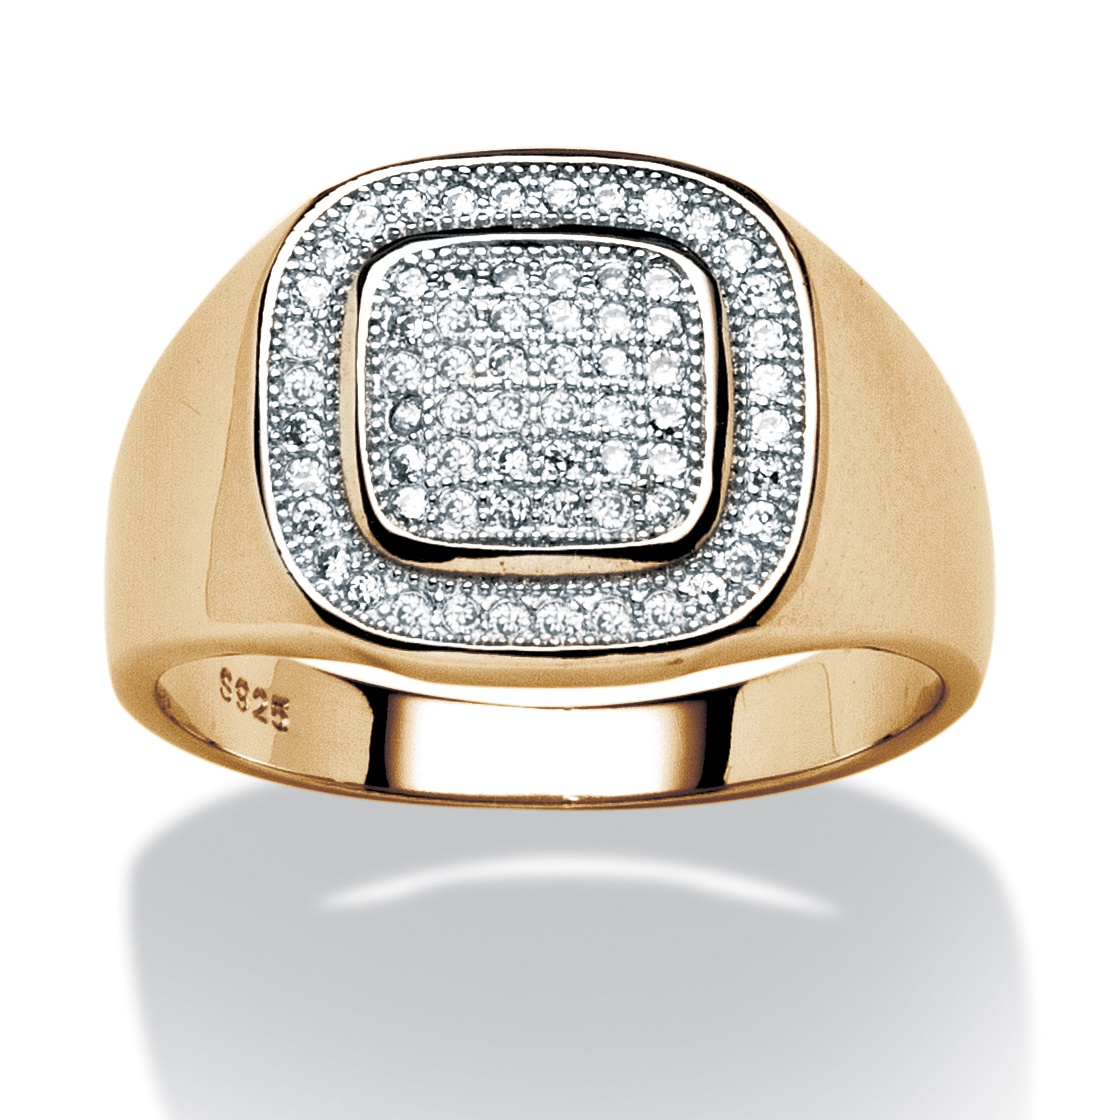 Men's .34 TCW Cubic Zirconia Ring in 18k Gold over Sterling Silver